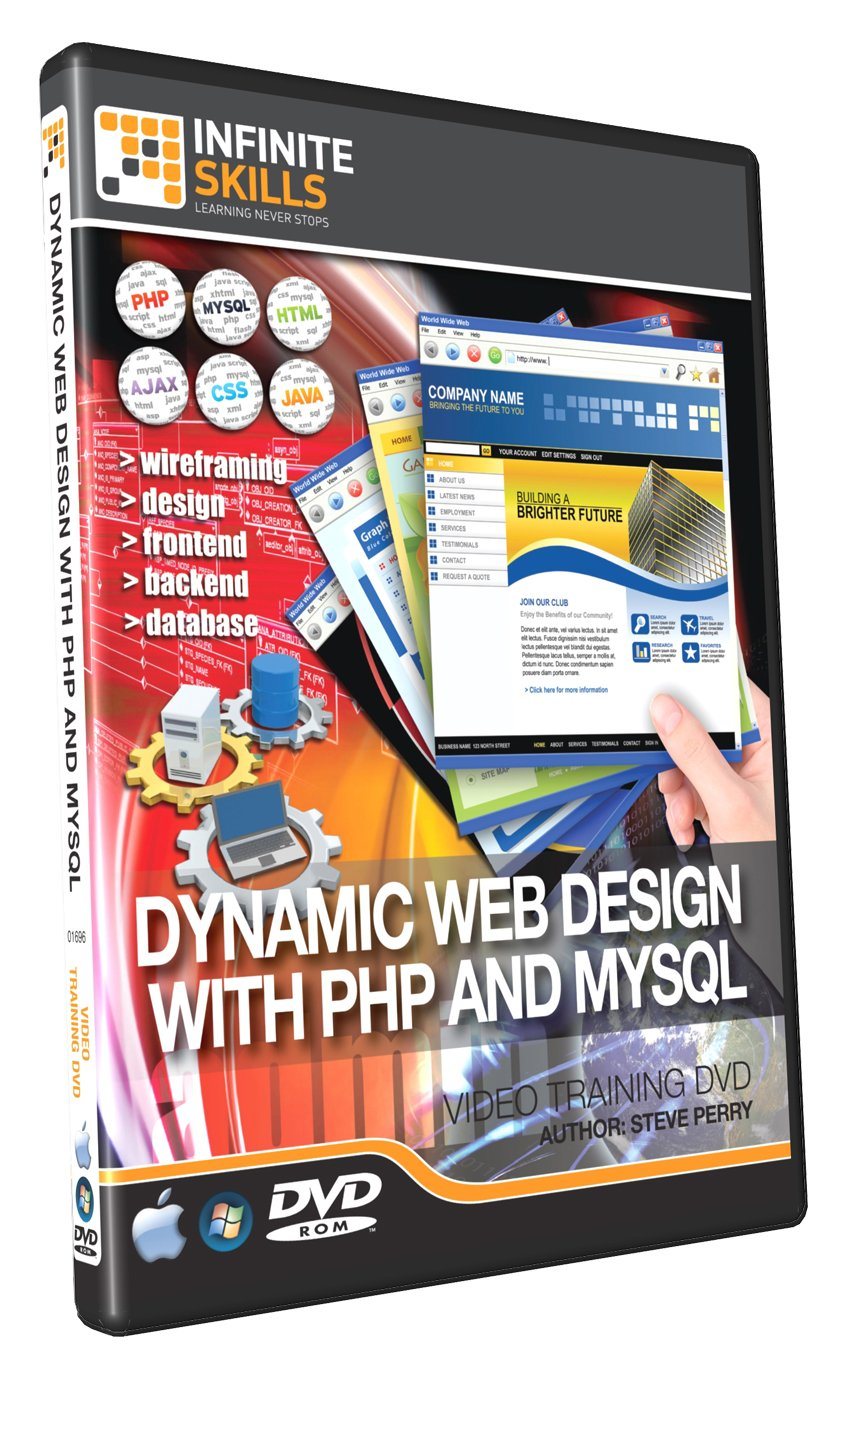 Learning dynamic web design with php and mysql training dvd learning dynamic web design with php and mysql training dvd tutorial video amazon software baditri Image collections